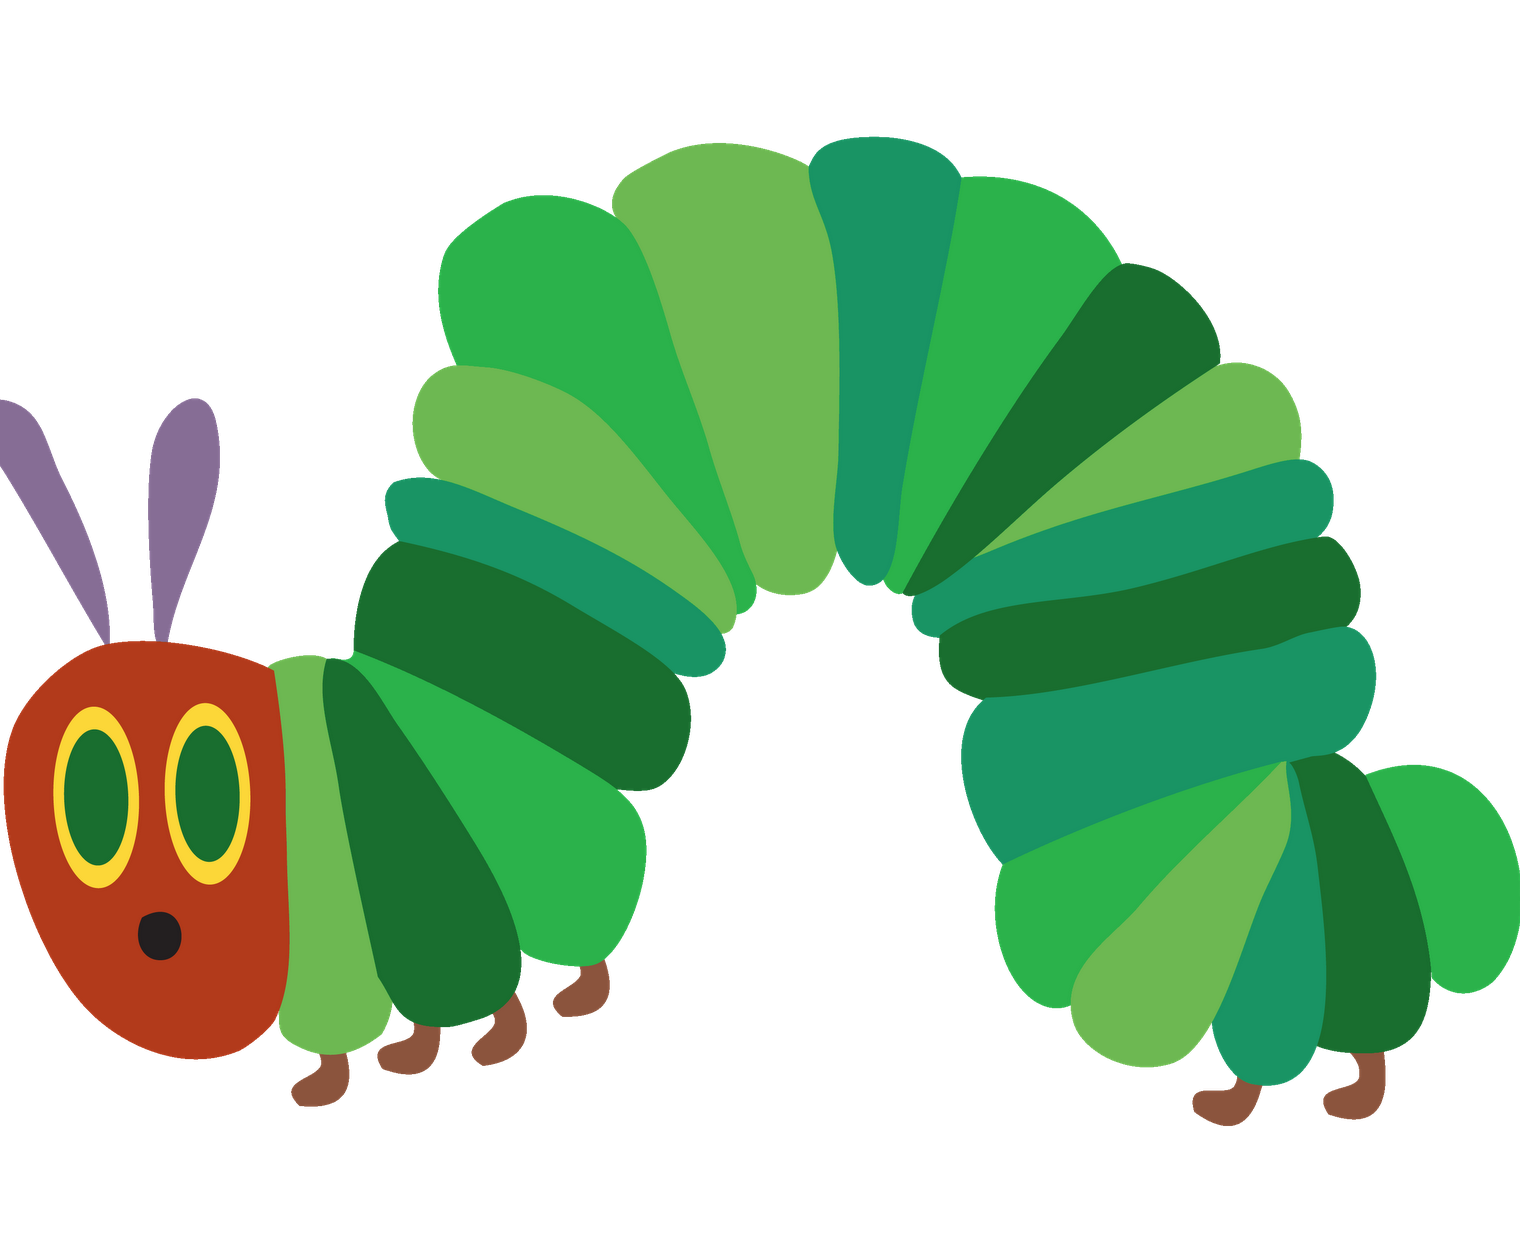 Banana hungry caterpillar clipart clipart library download Caterpillar Food Cliparts   Free download best Caterpillar Food ... clipart library download